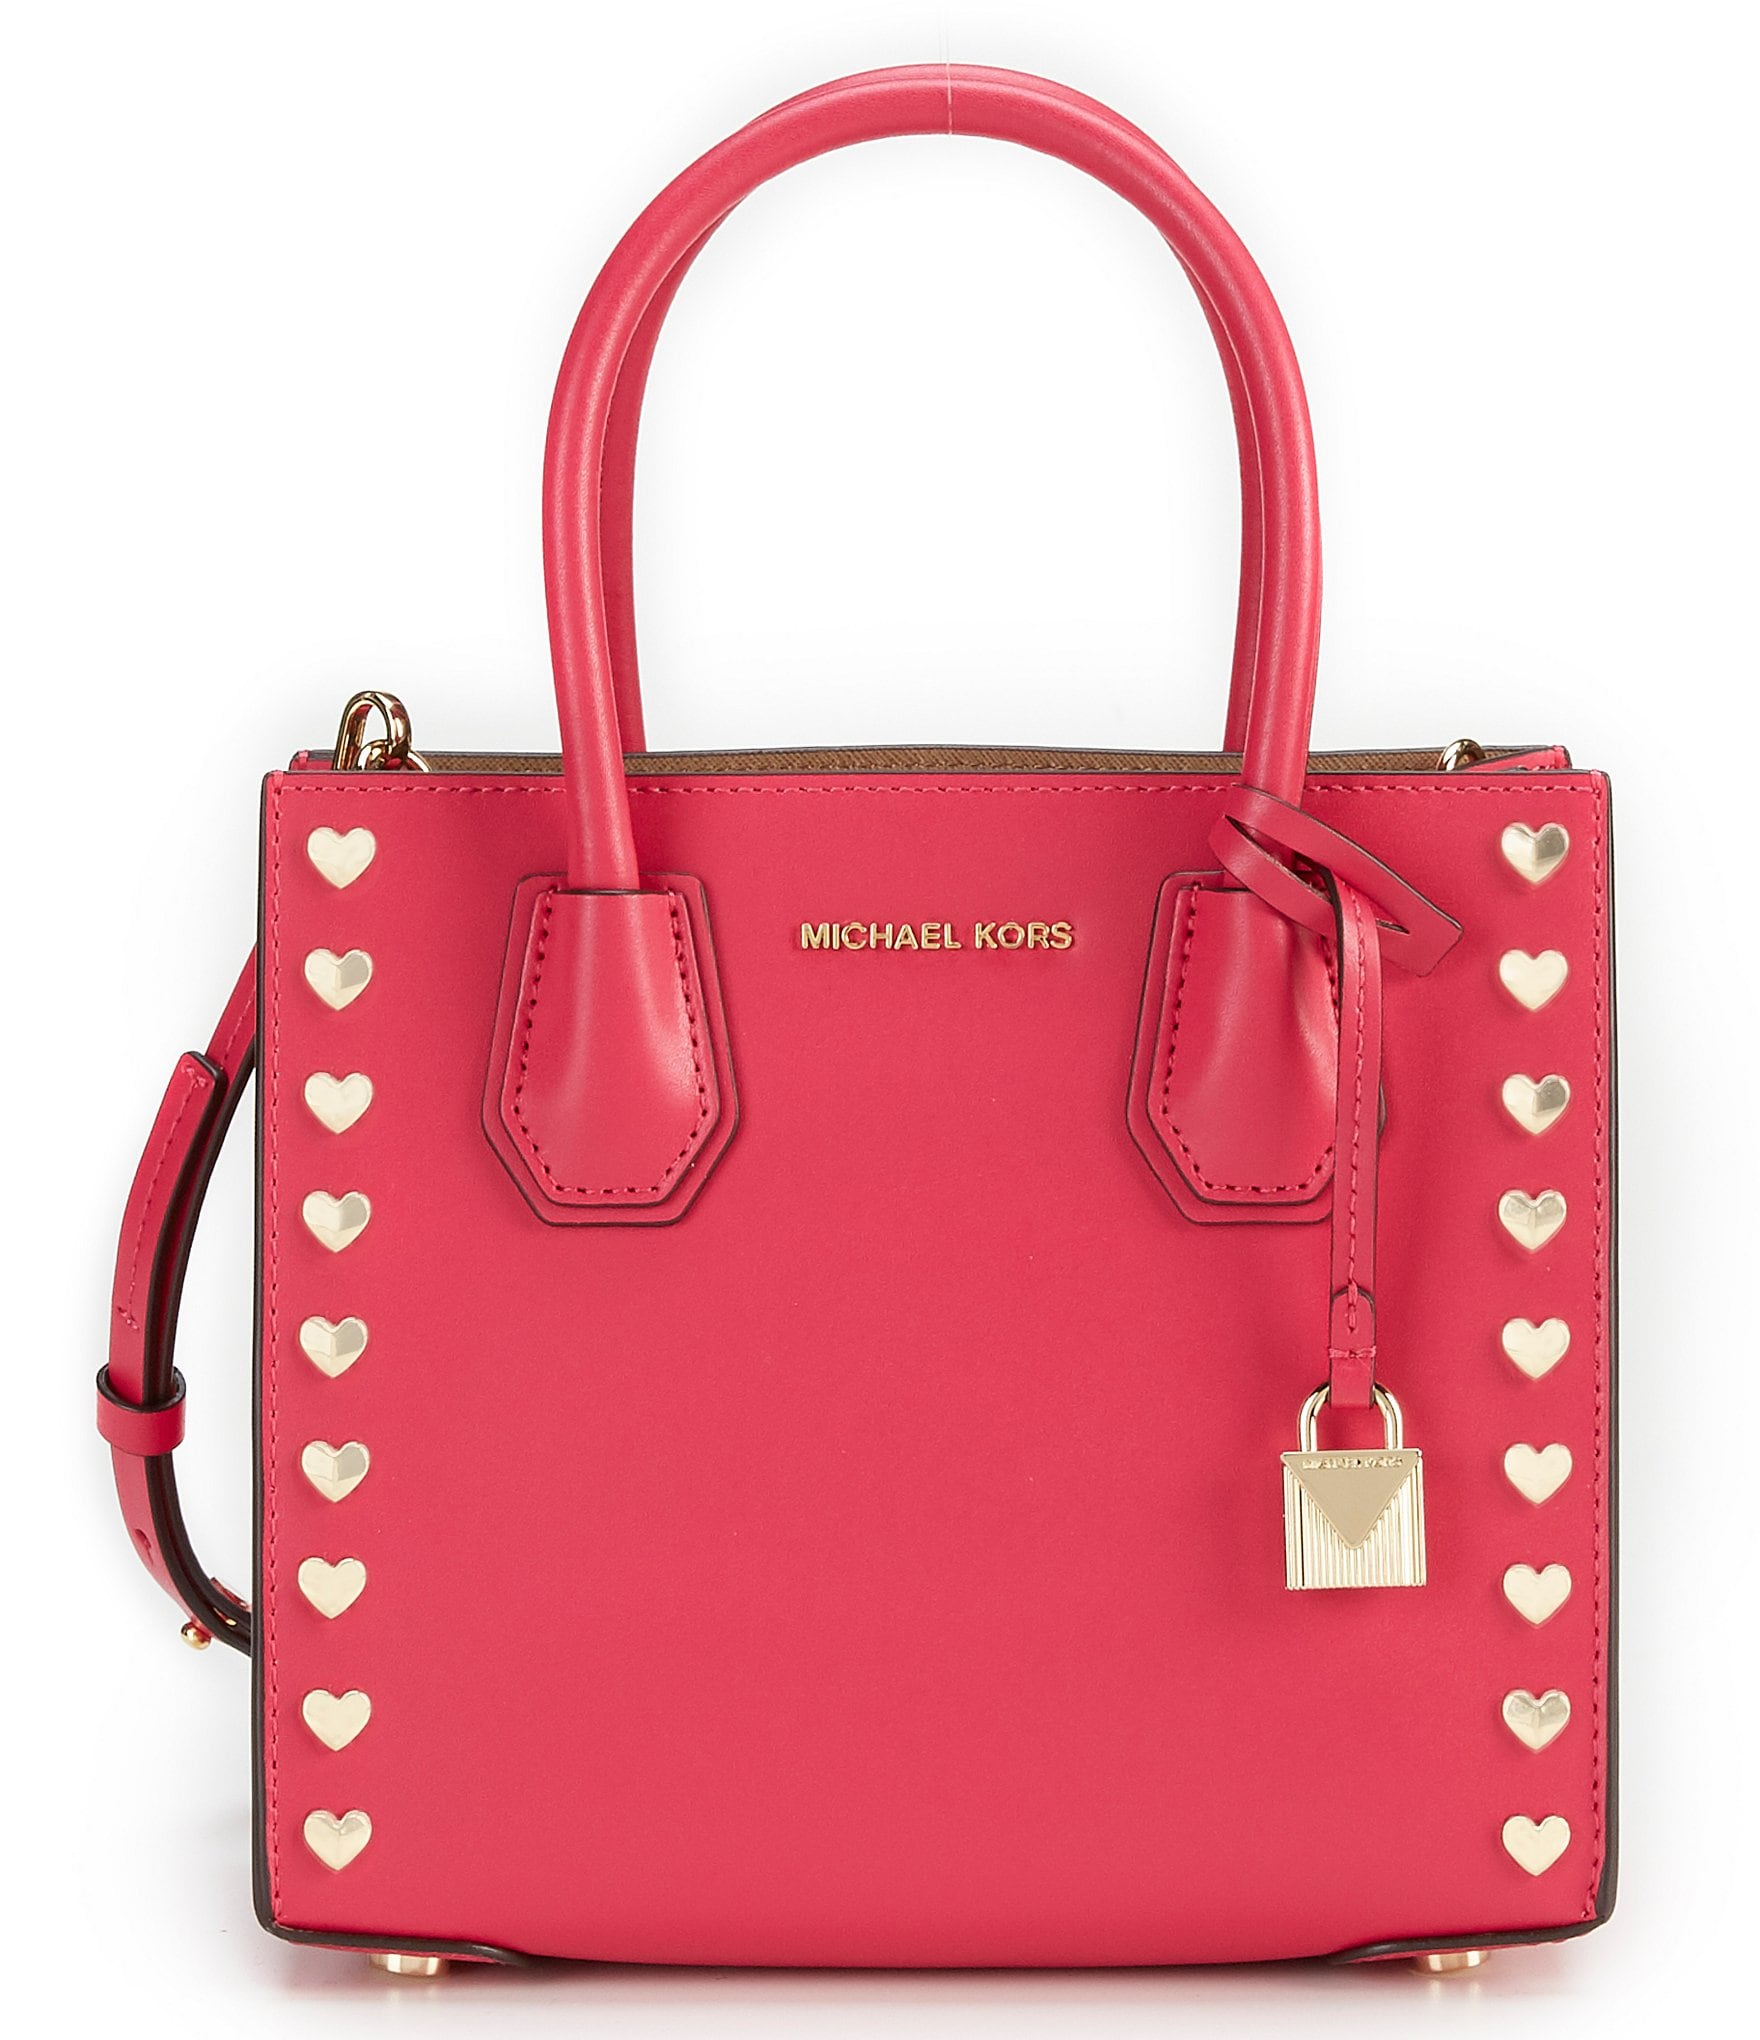 Shop New & Pre-Loved Bags, Purses & Wallets On Poshmark And Save!Fashion at 70% off · Posh Protect · day priority shipping.